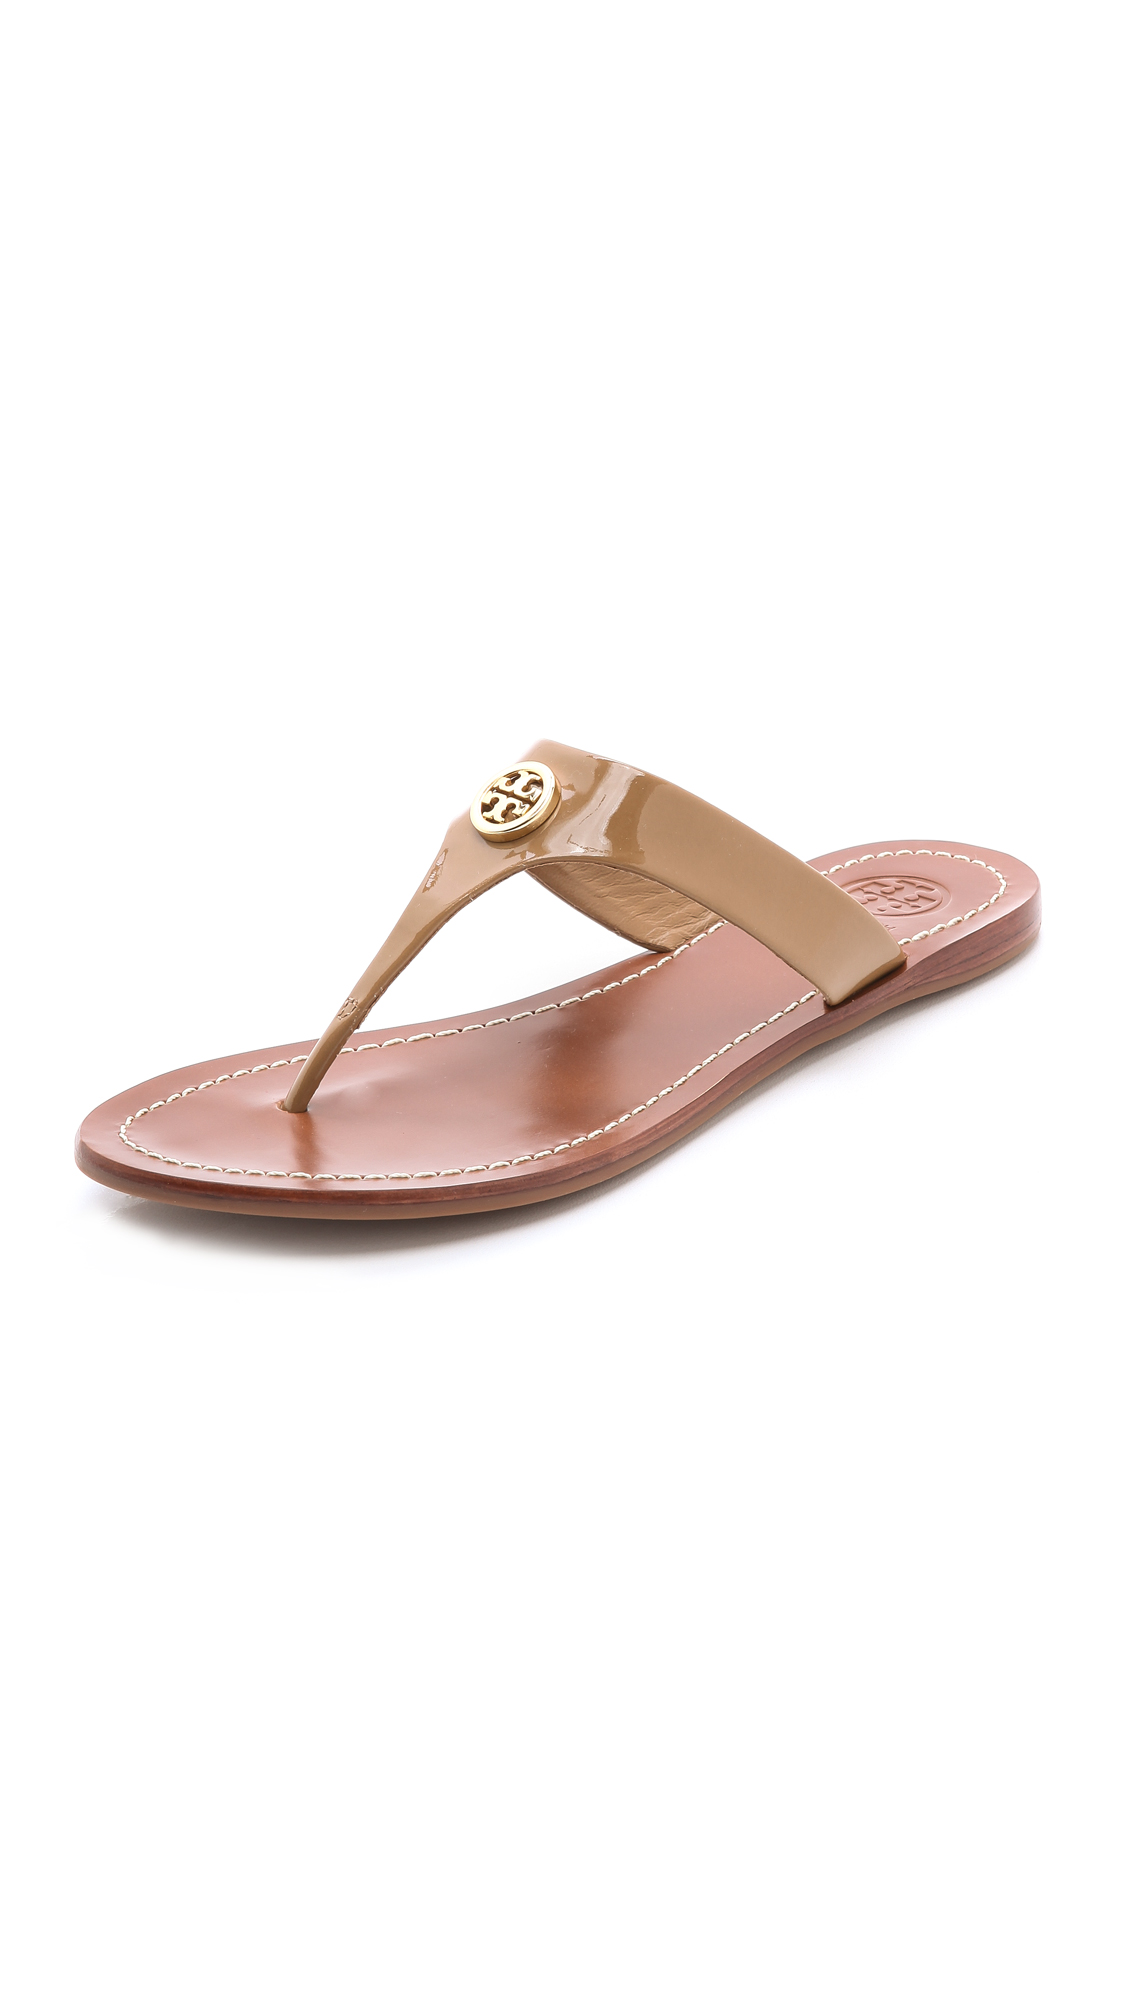 af64d66dda2c55 Lyst - Tory Burch Cameron Thong Sandals in Natural